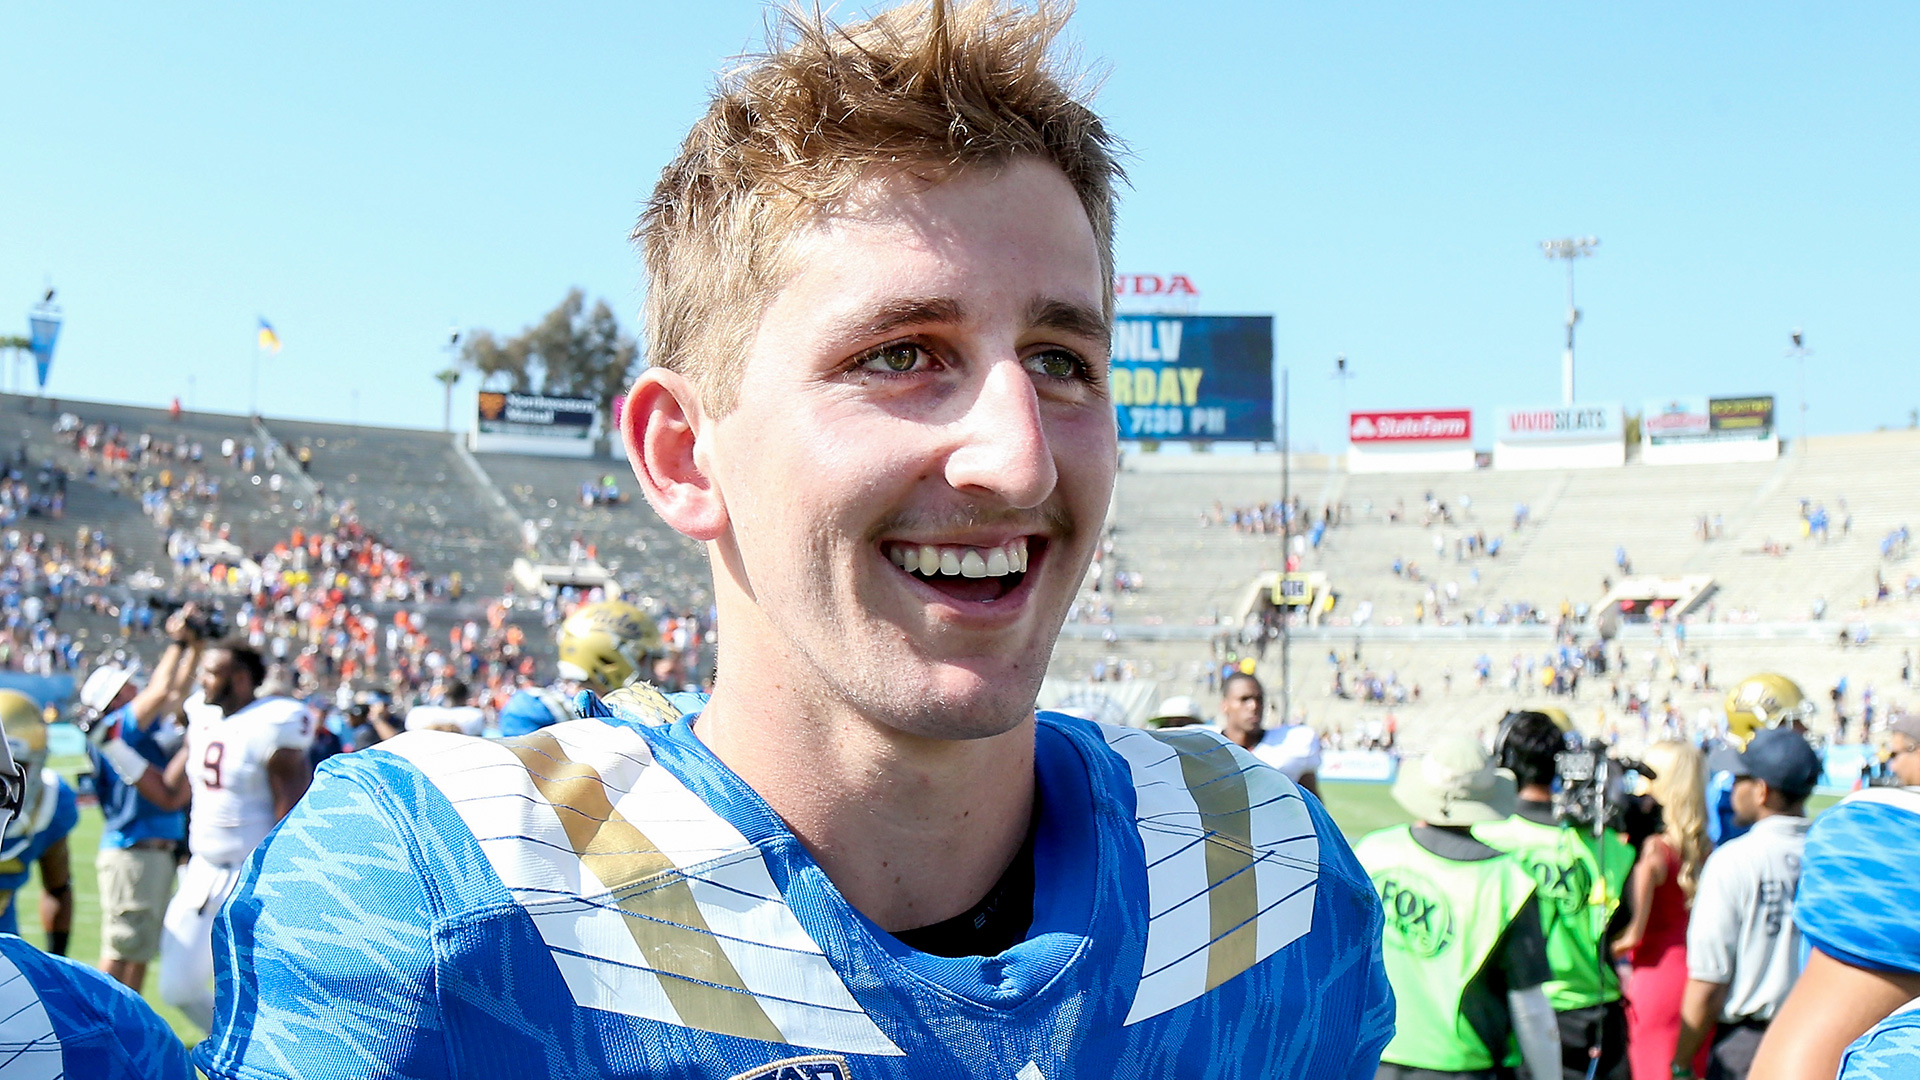 UCLA QB takes a jab at Clemson's academics